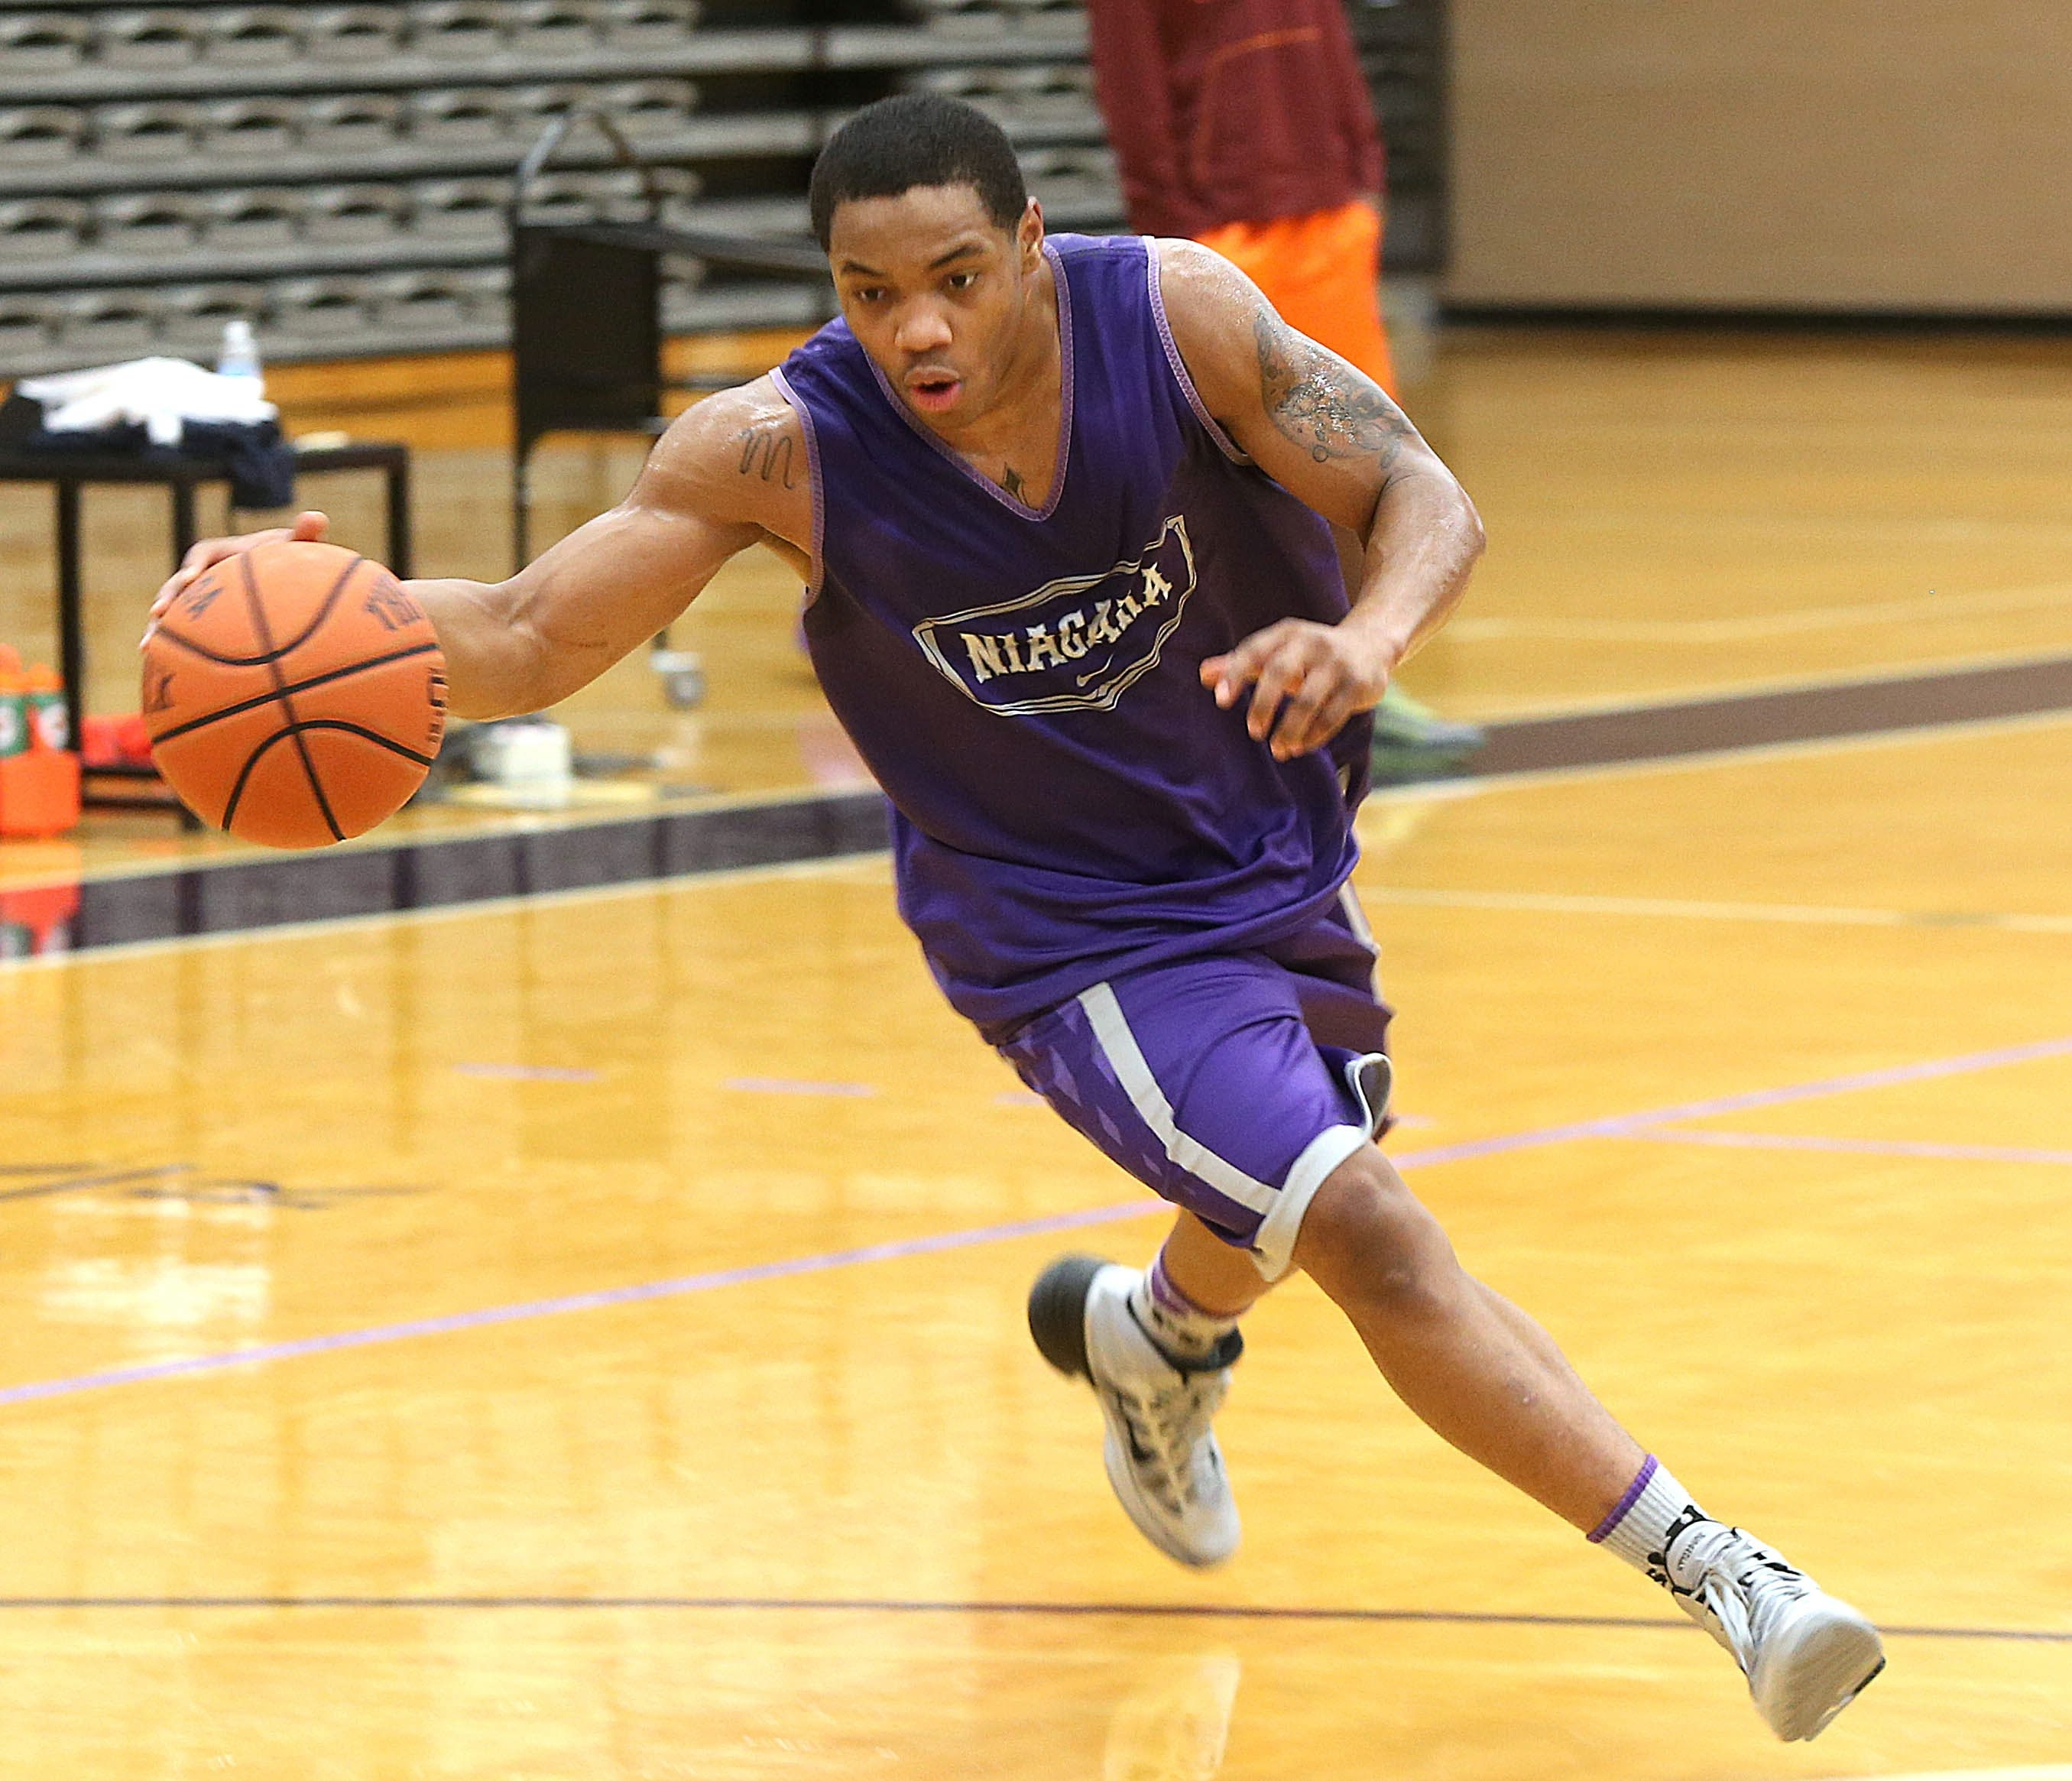 Marvin Jordan has the chance to leave Niagara as the program's all-time leader in three-pointers made.